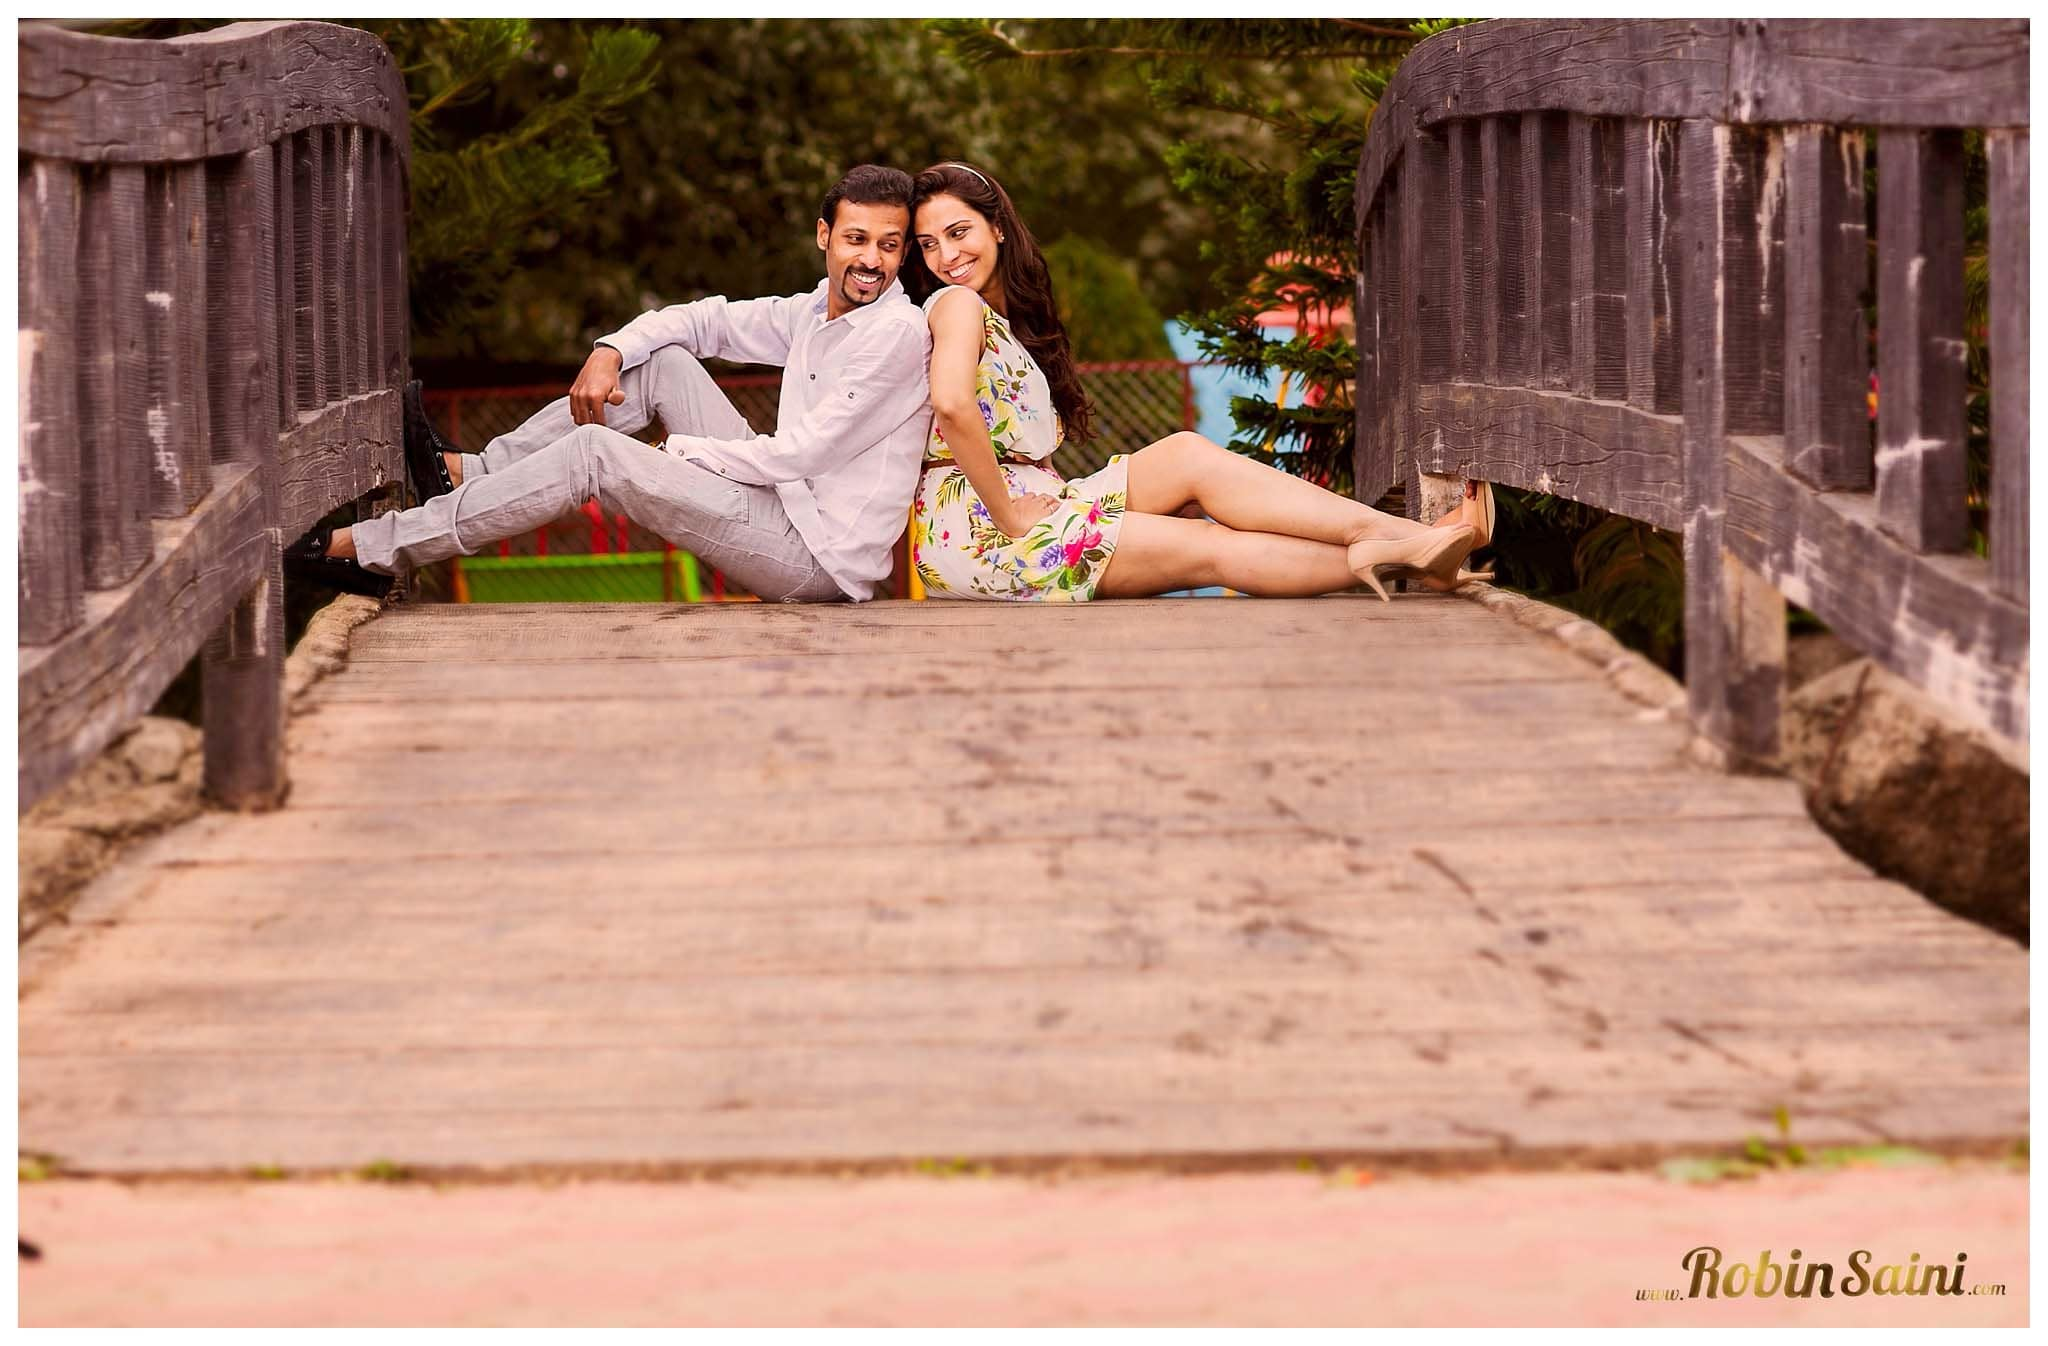 couple pre wedding photography:robin saini photography